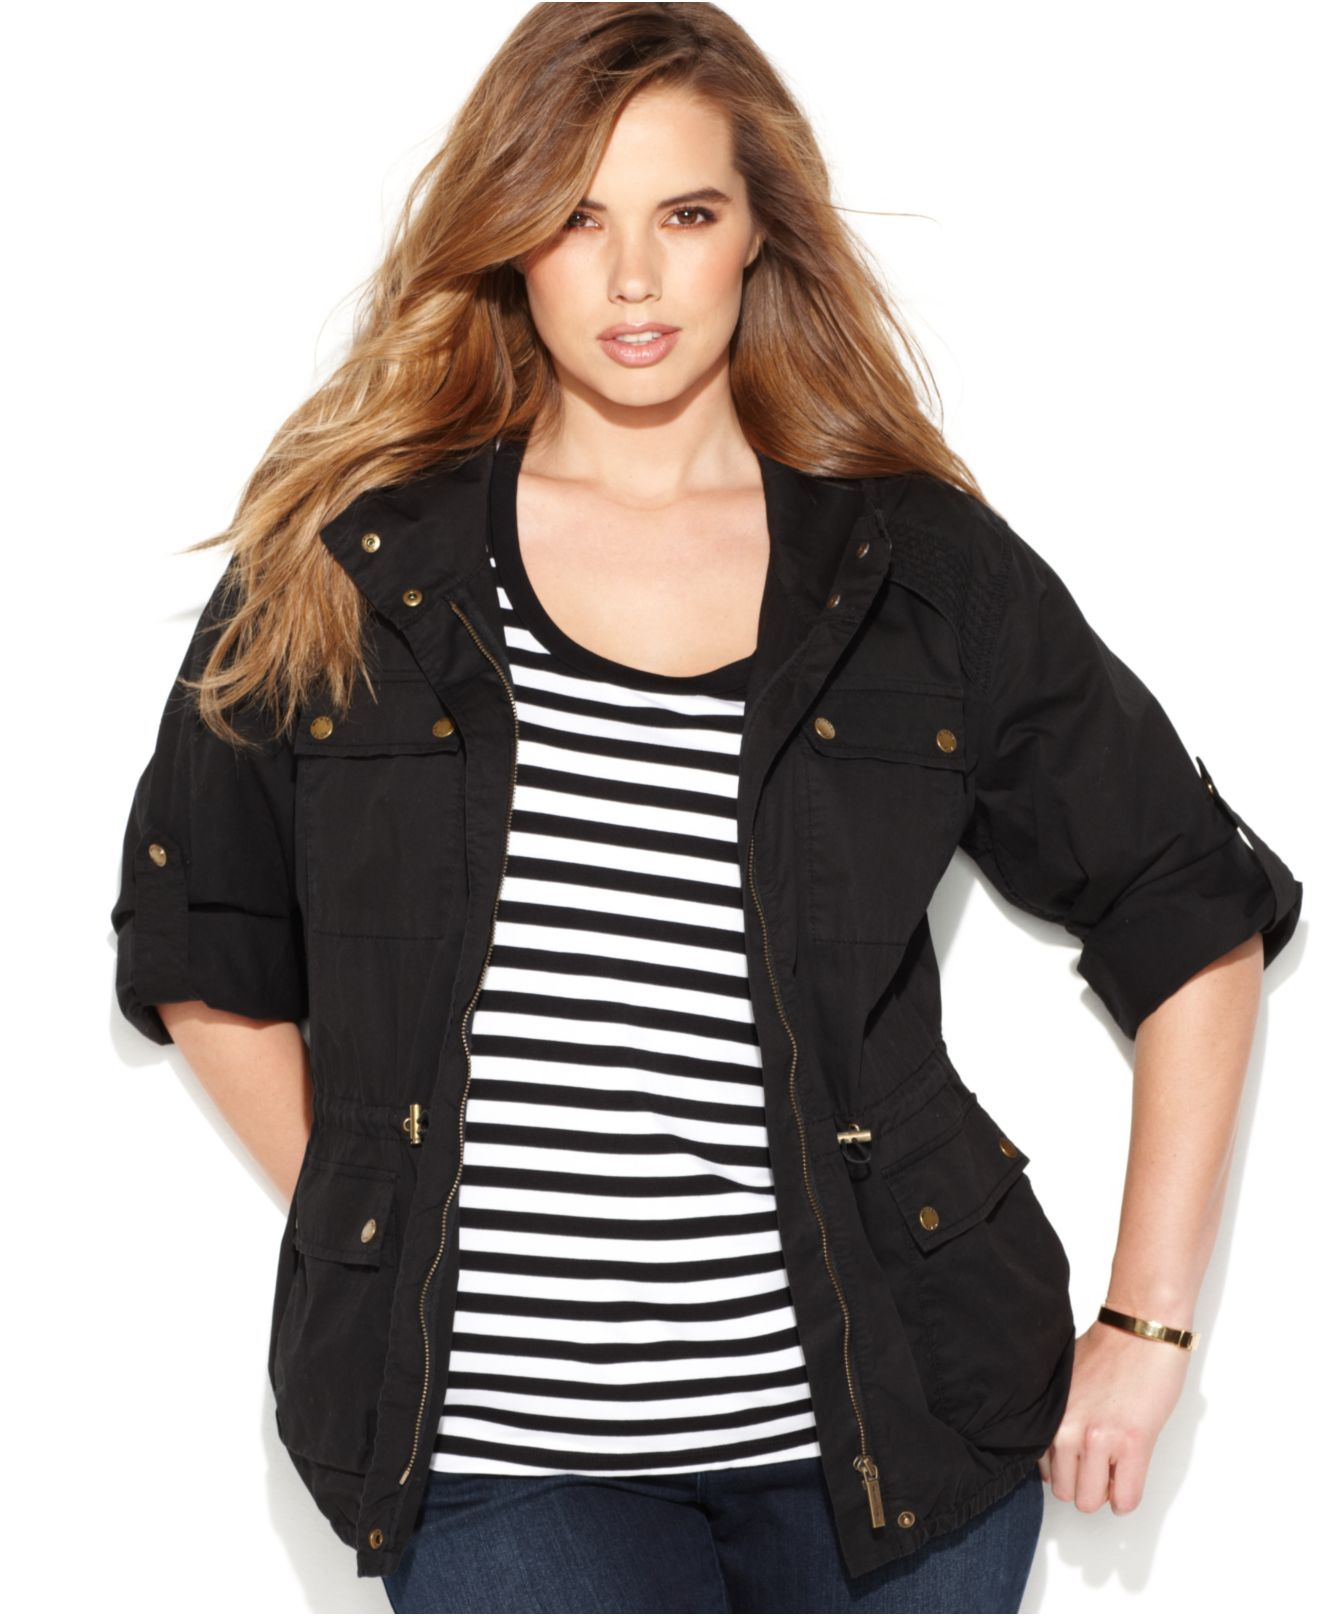 michael kors michael plus size anorak jacket in black | lyst